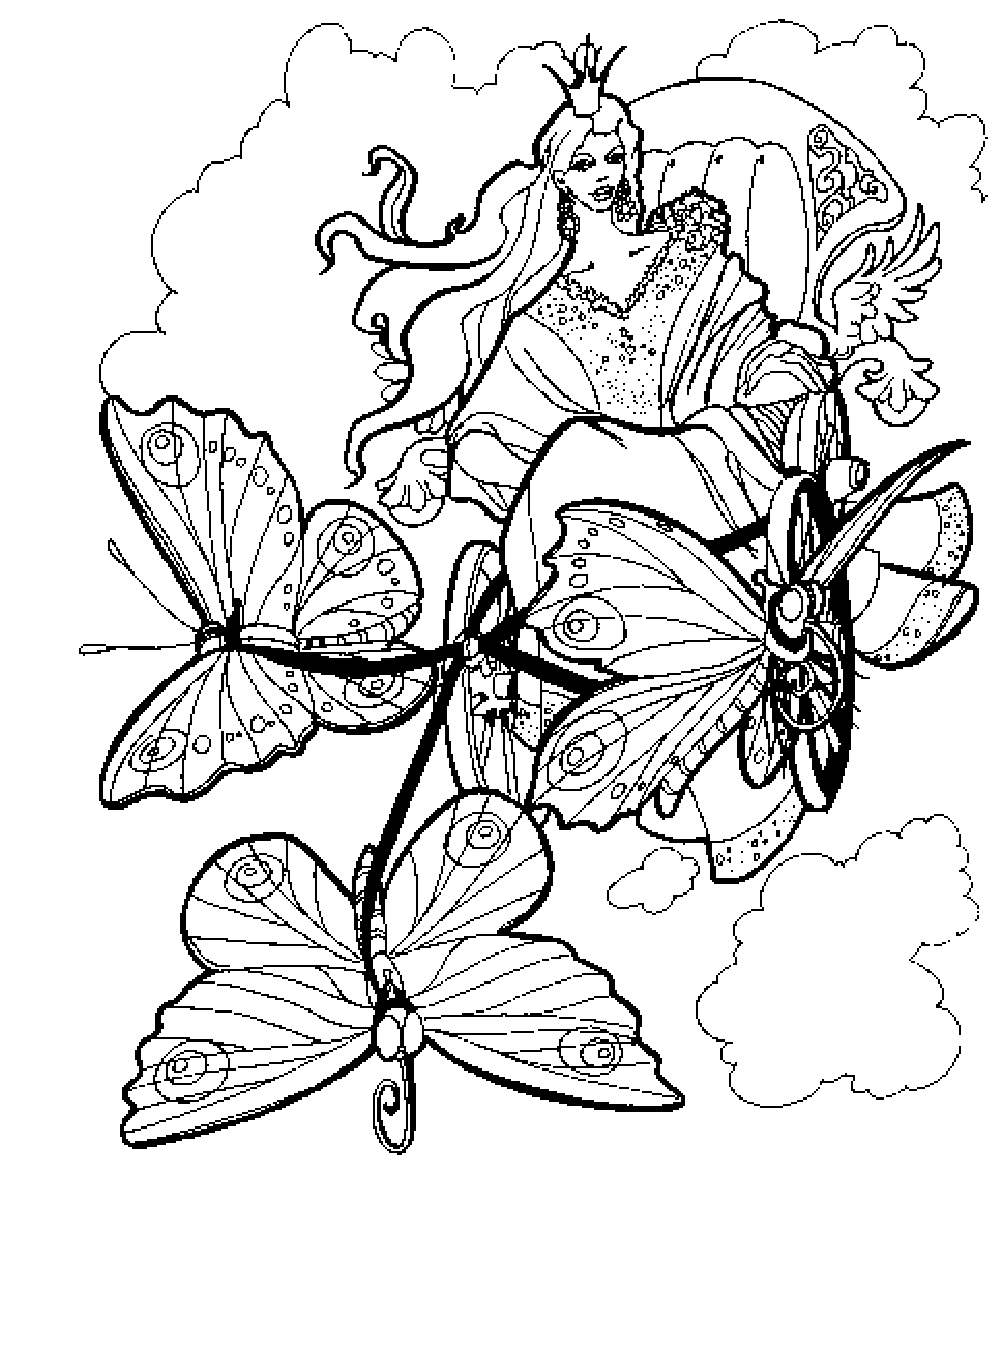 Advanced Coloring Pages For Adults At Getdrawings Com Free For